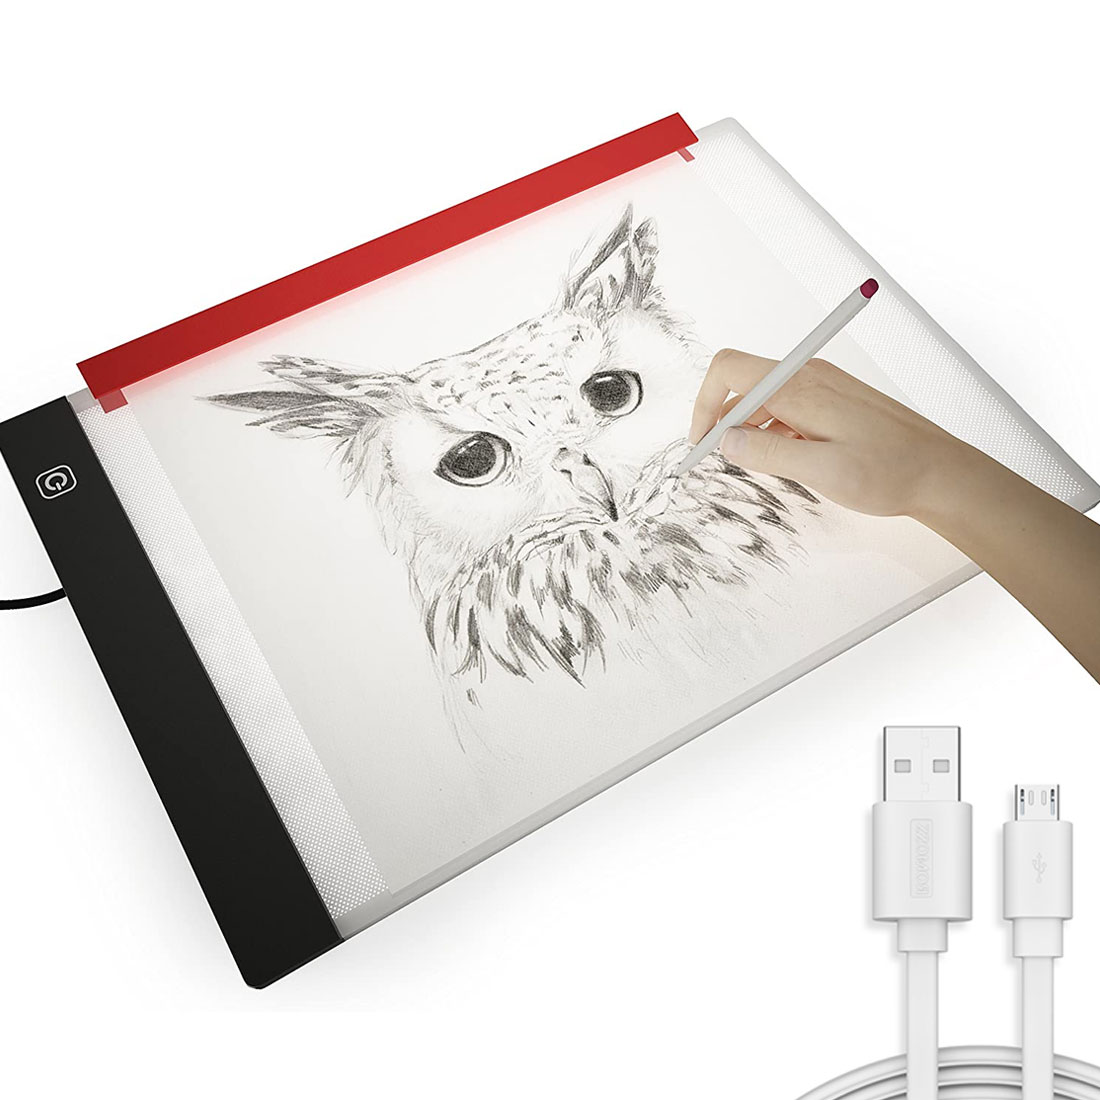 A3 A4 A5 Drawing Tablets LED Light Pad for Artists Animation Drawing Graphics Tablet Tracing Copy Board Digital Tablets Dimmable